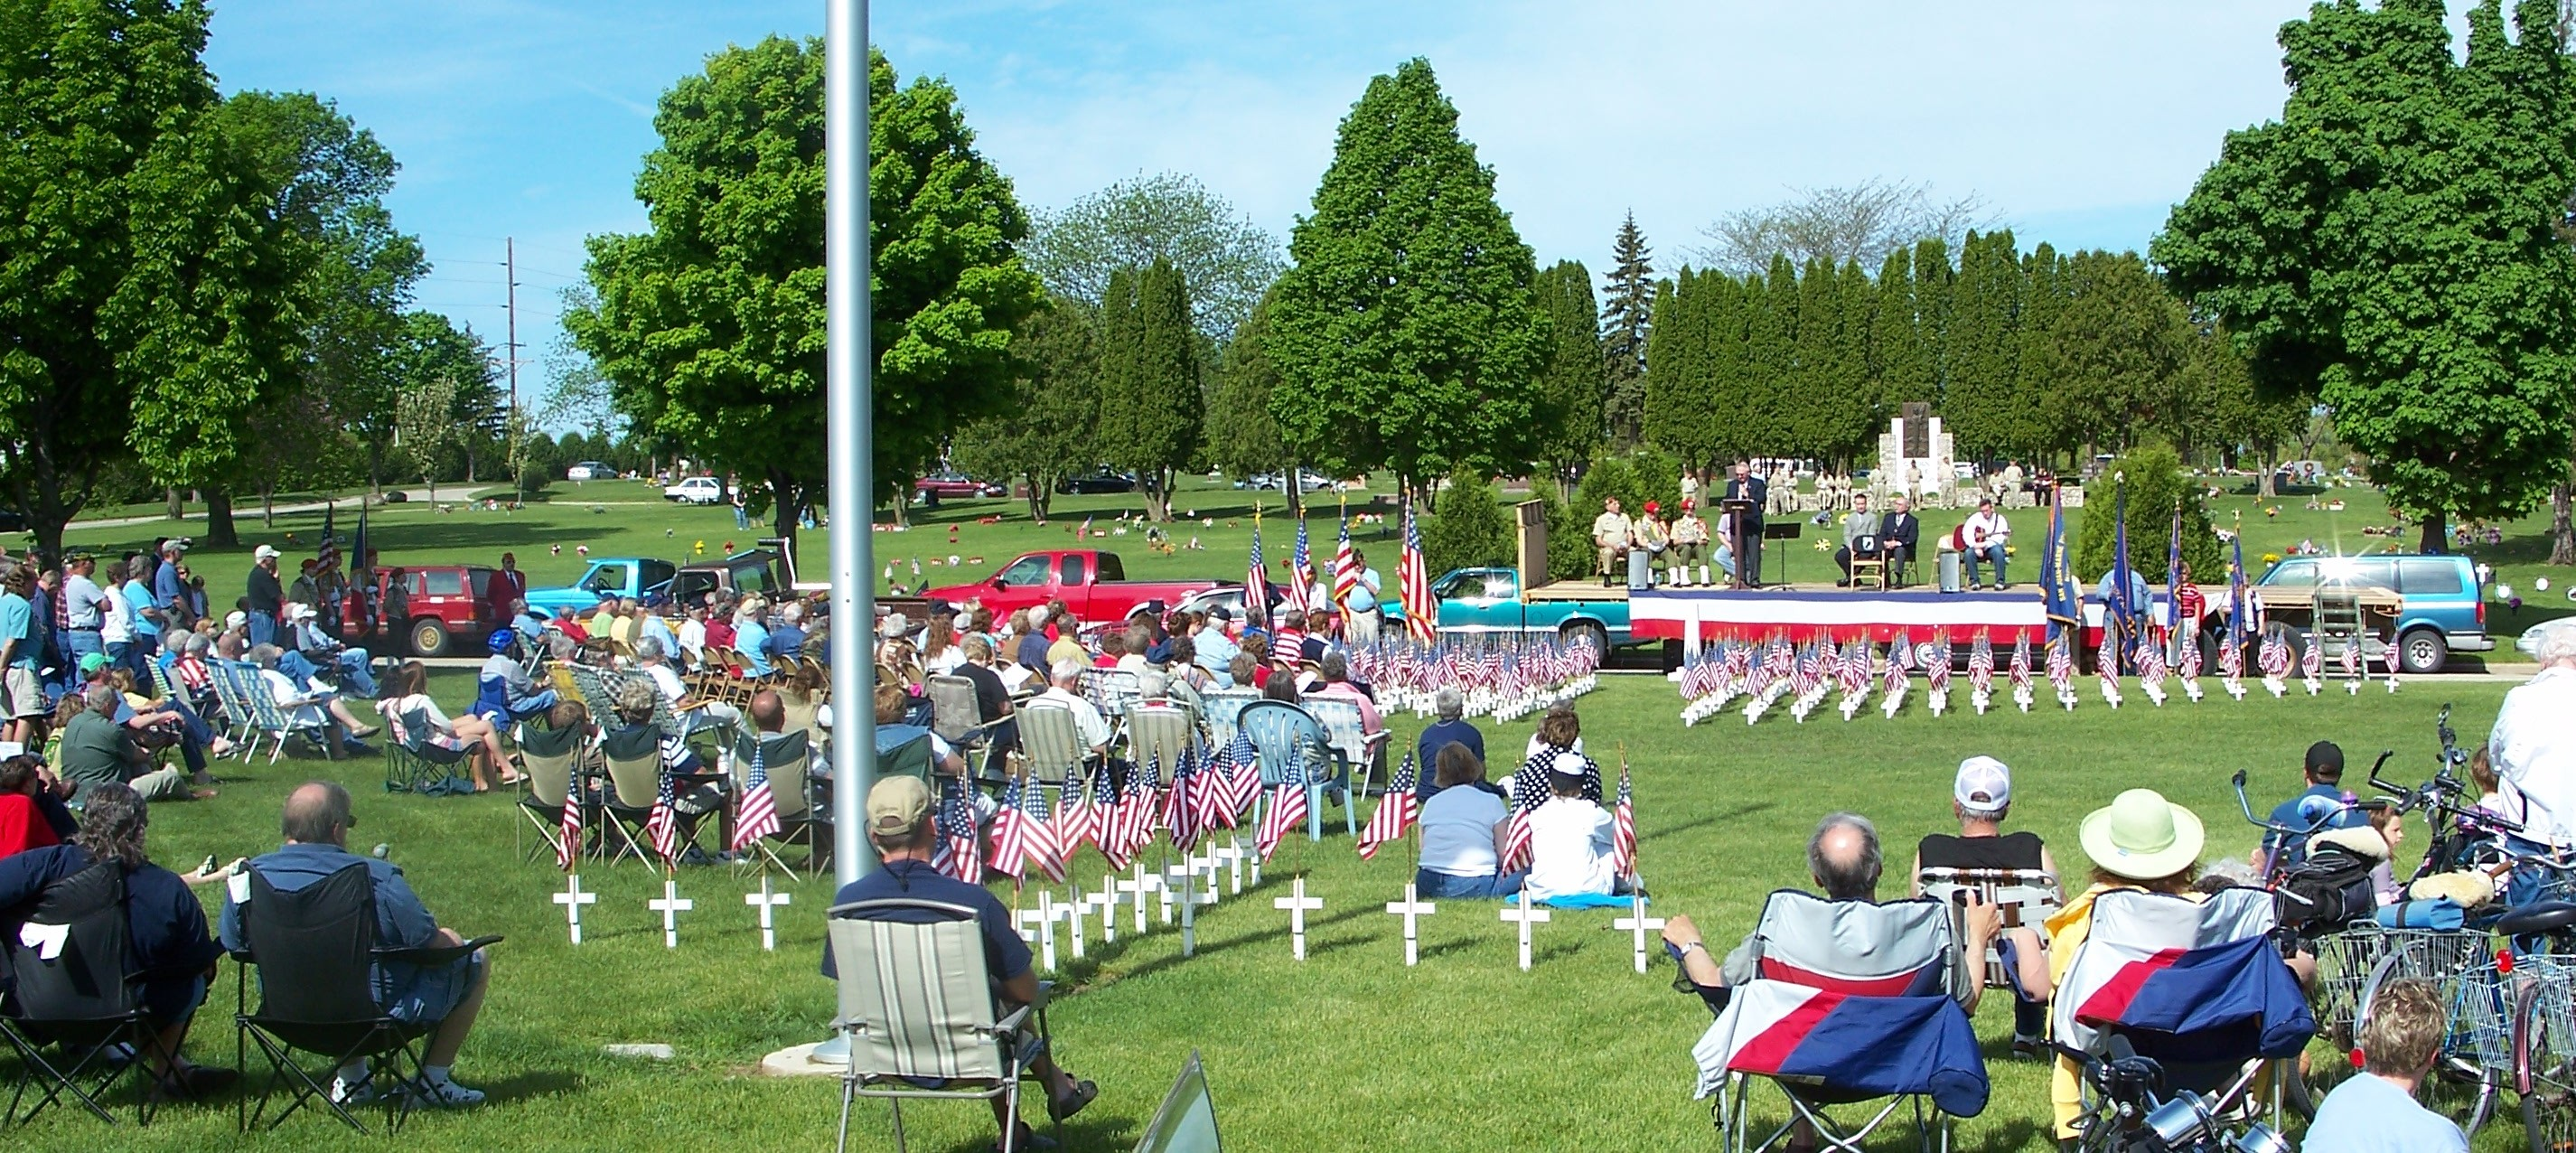 Memorial Day Program in area dedicated to Veterans of Foriegn Wars